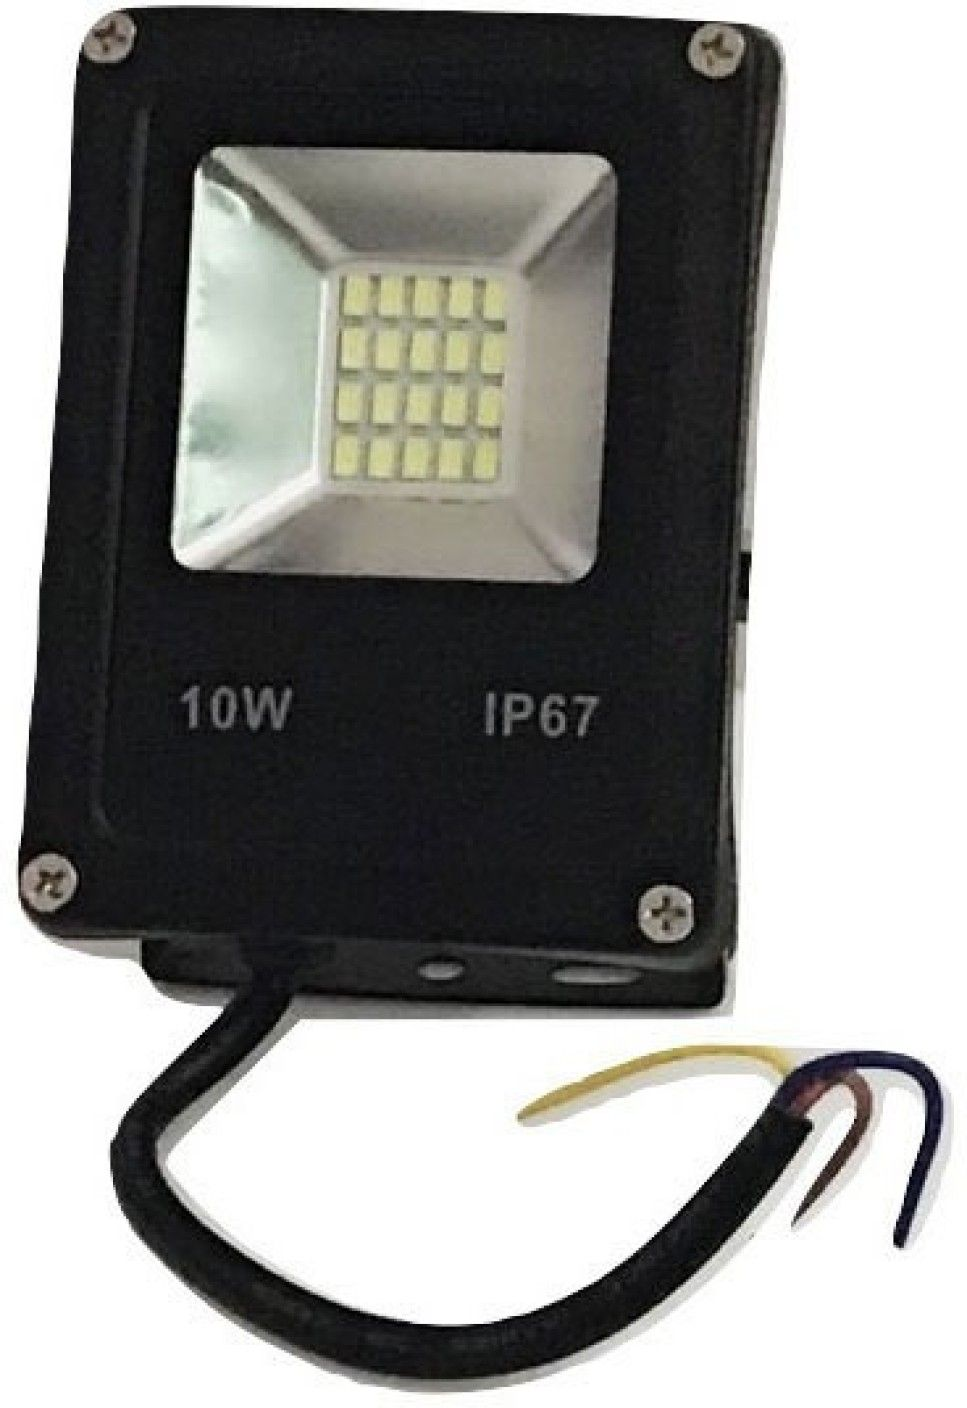 Pin By Galaxy Lightings On Led Slim Flood Light Outdoor Lamp Flood Lights Lamps Online